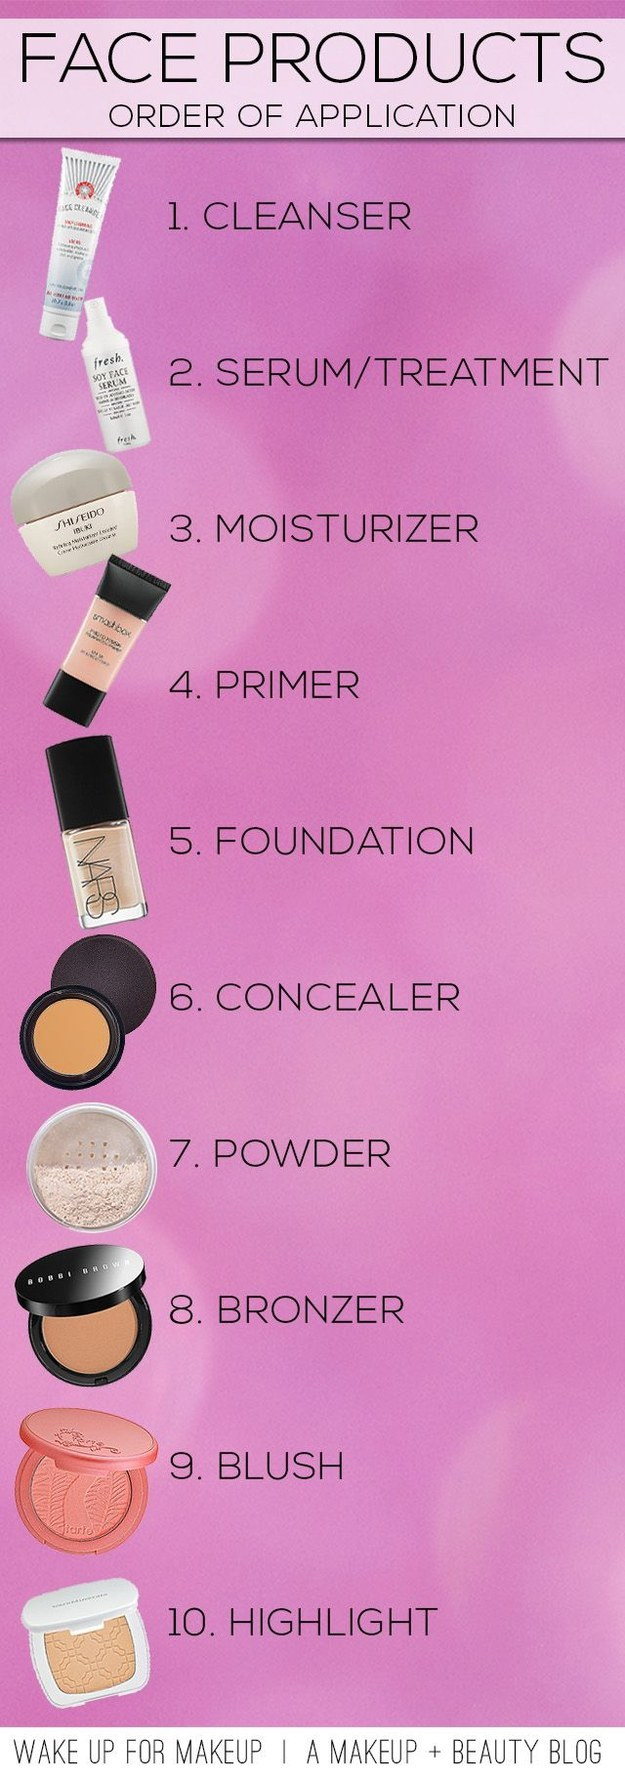 How to put on makeup steps